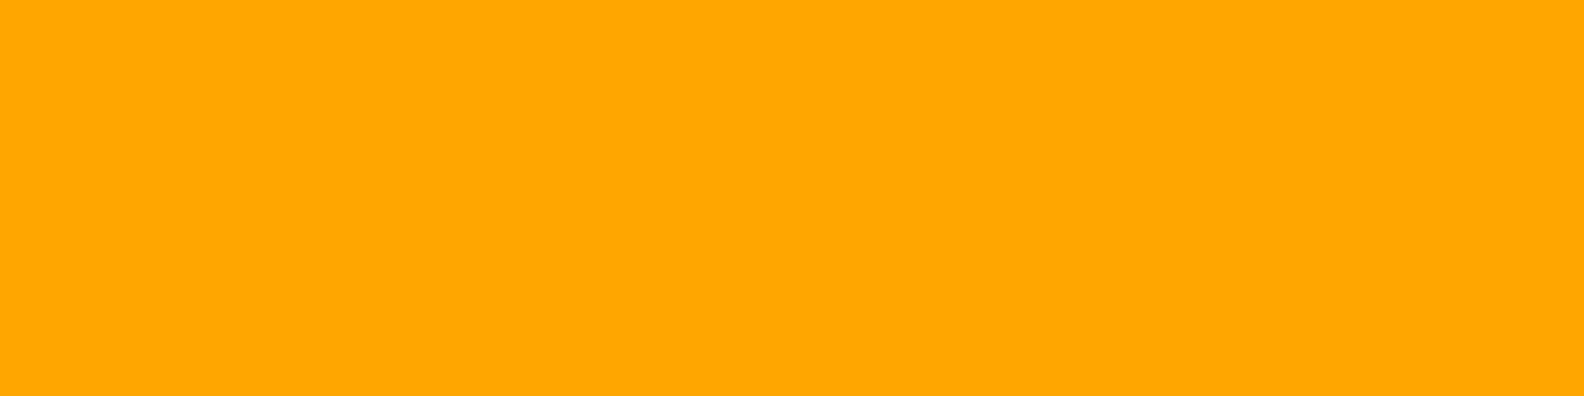 1584x396 Chrome Yellow Solid Color Background